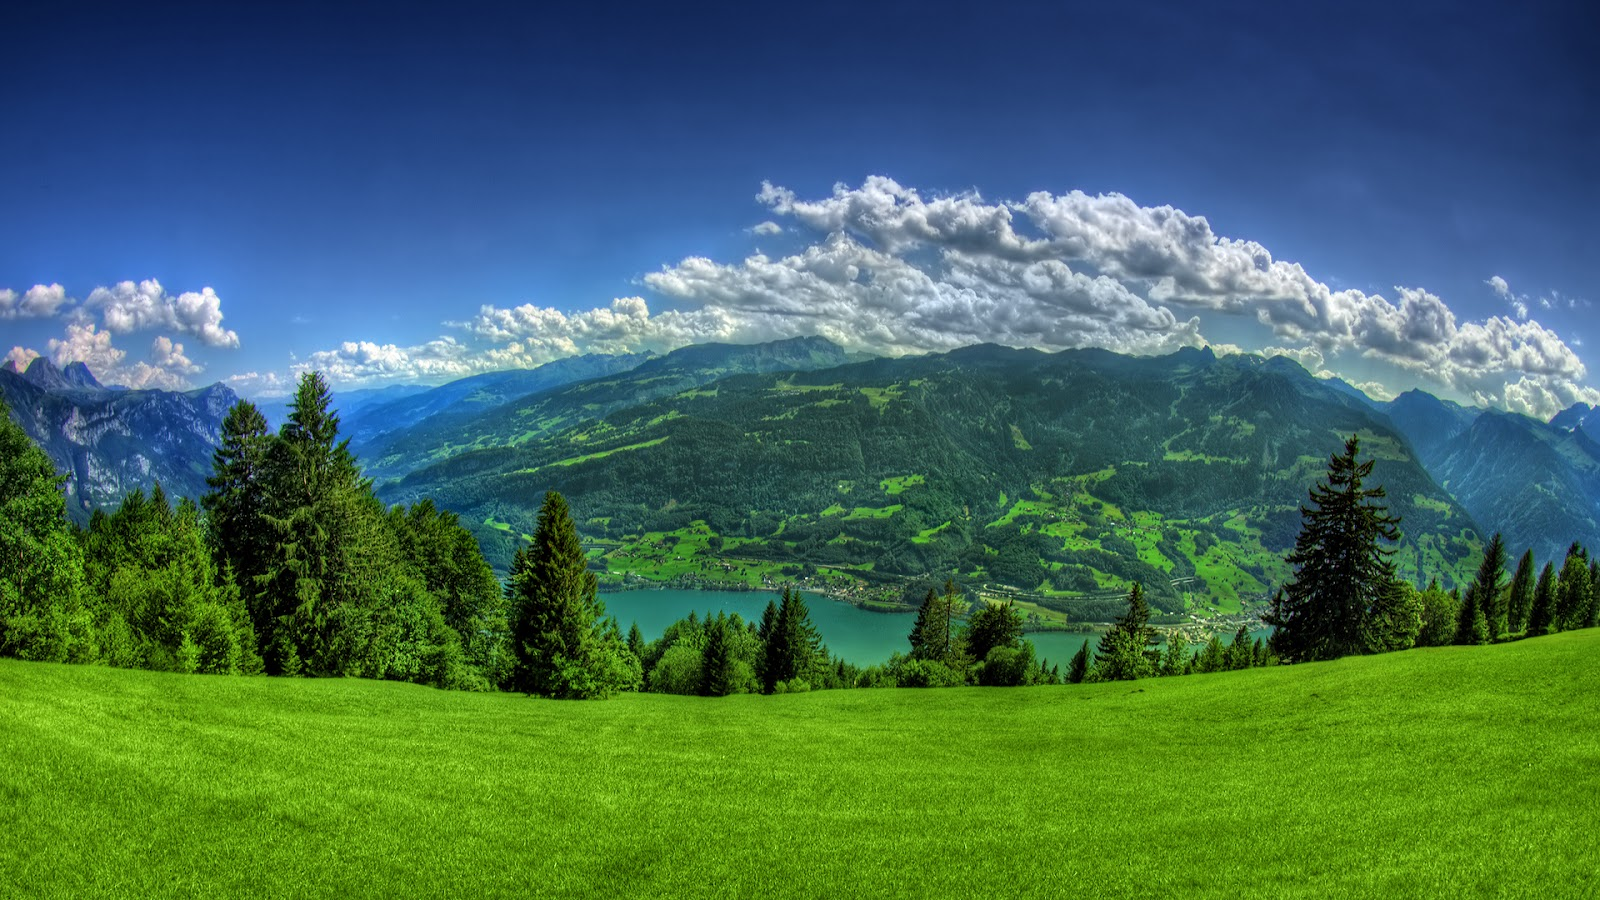 Lush Green Grass Mountain Full HD Nature Background Free Wallpapers ...